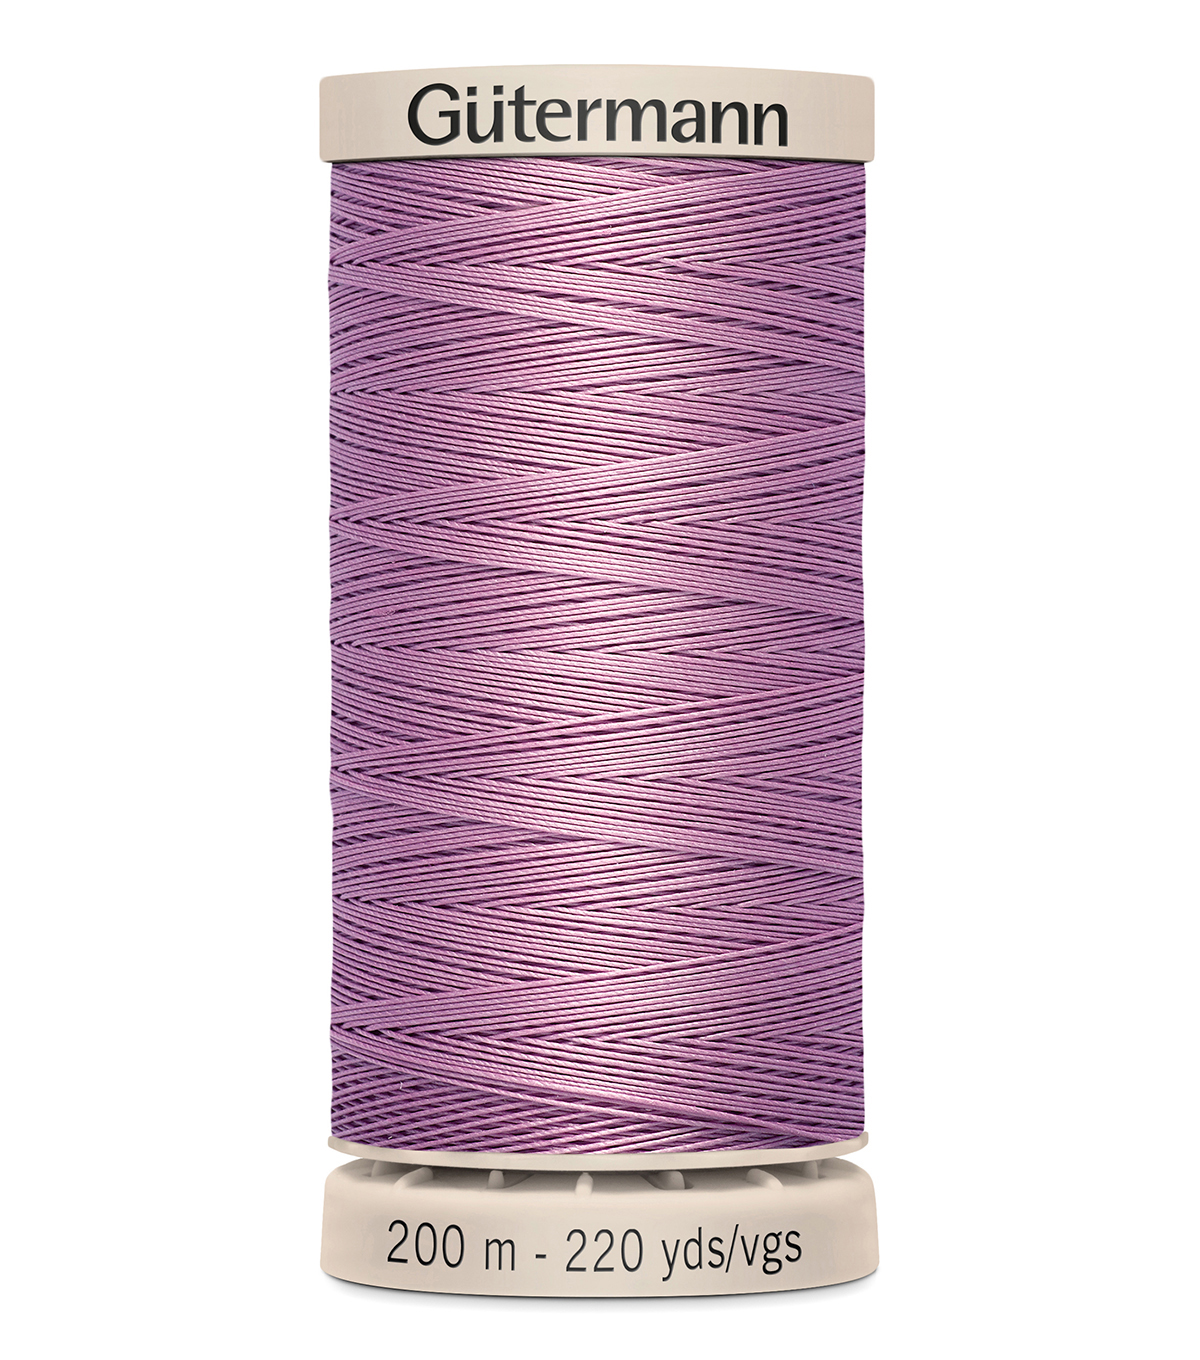 Gutermann Hand Quilting Thread 200 Meters (220 Yrds)-Primary, Dark Lilac #3526